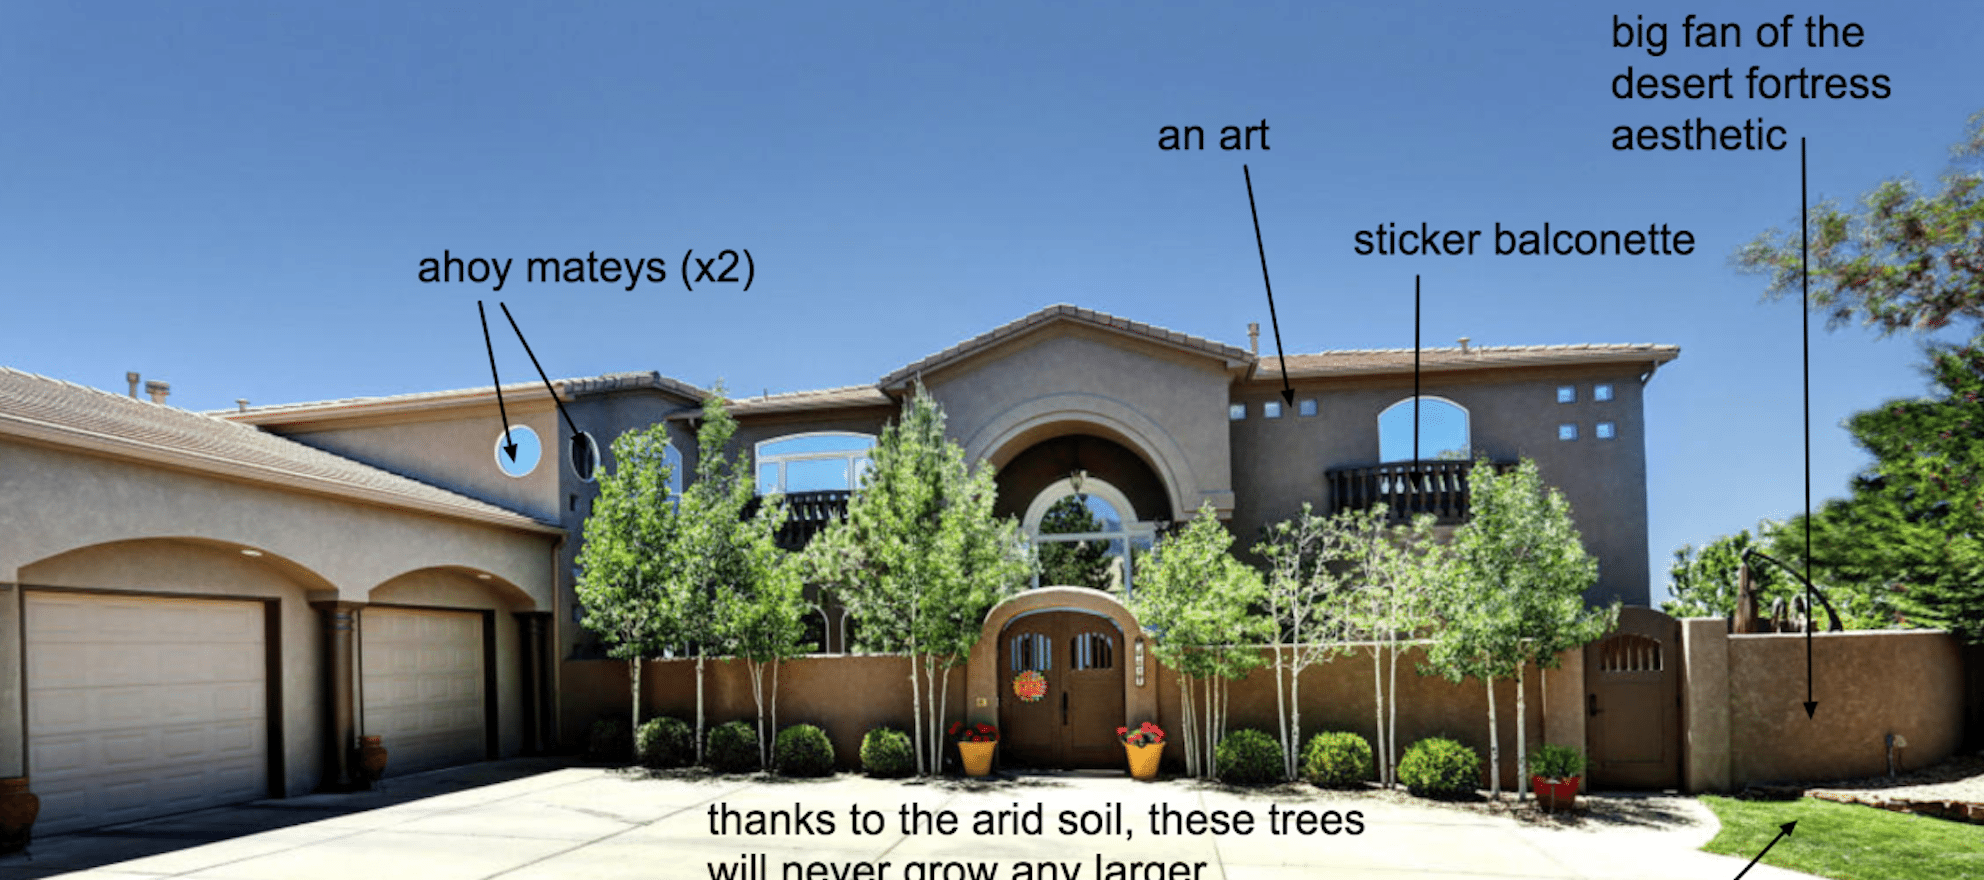 McMansion Hell blogger explains the sadness of living large